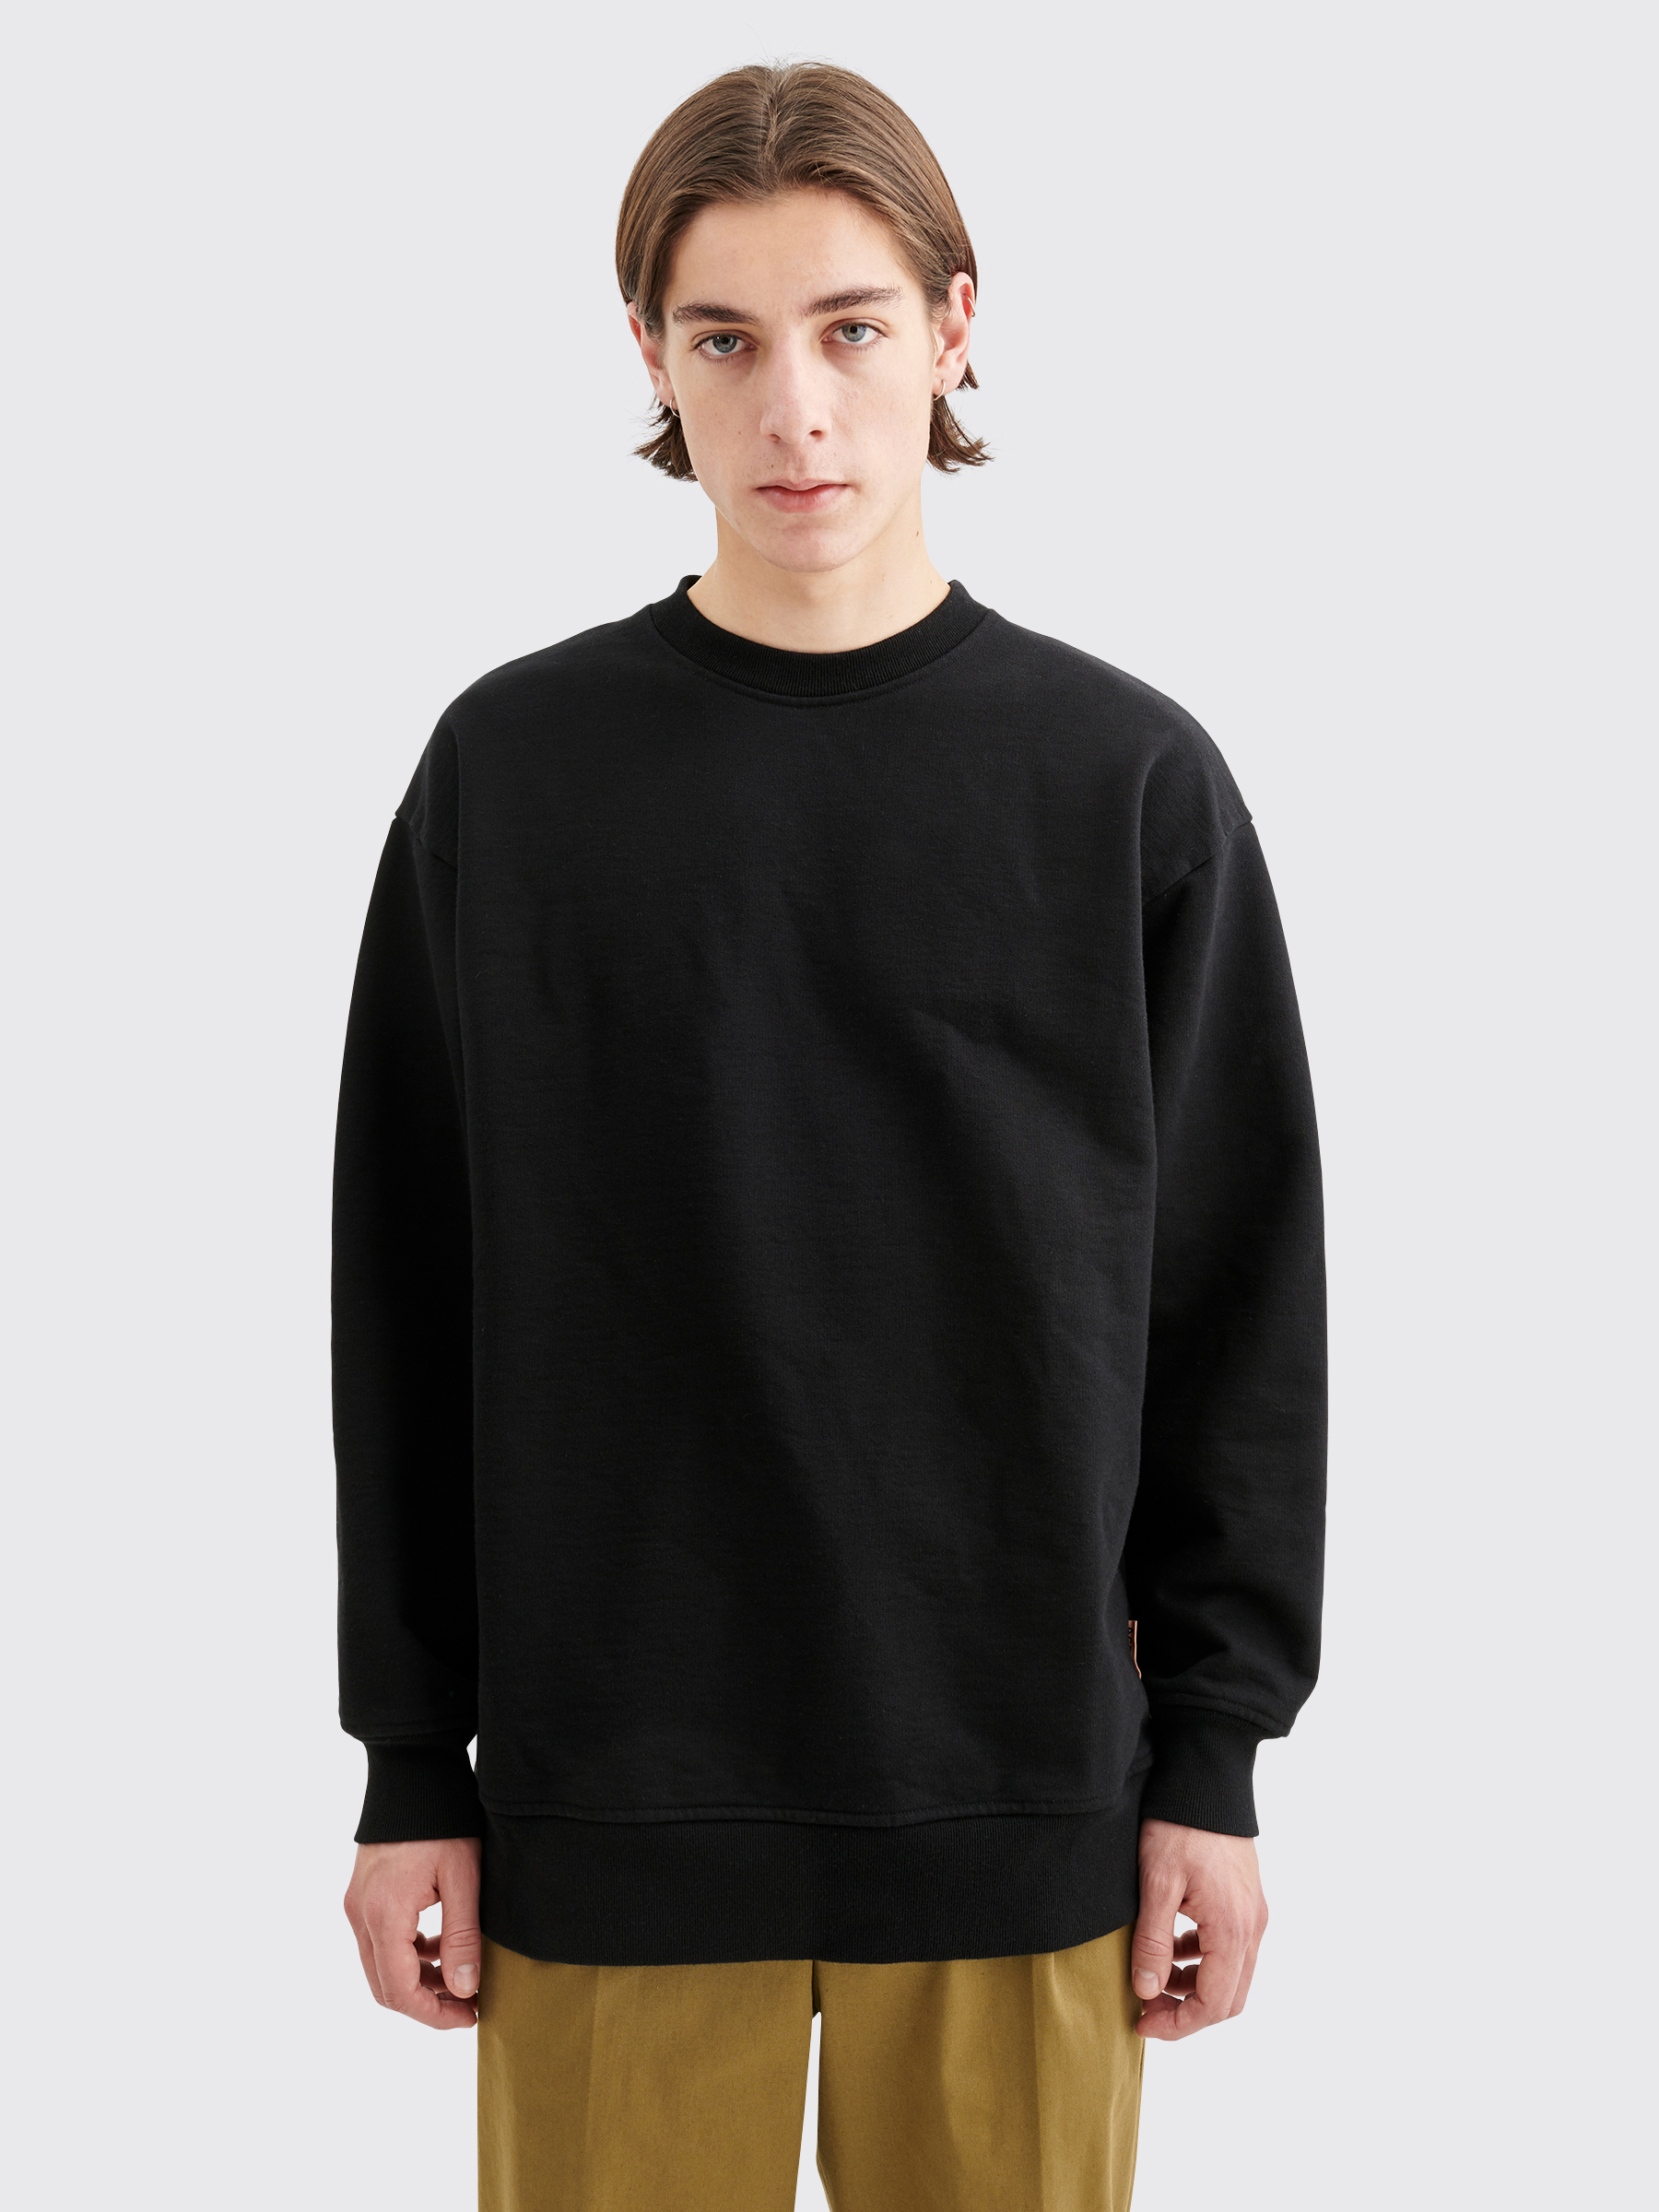 where is acne clothing made